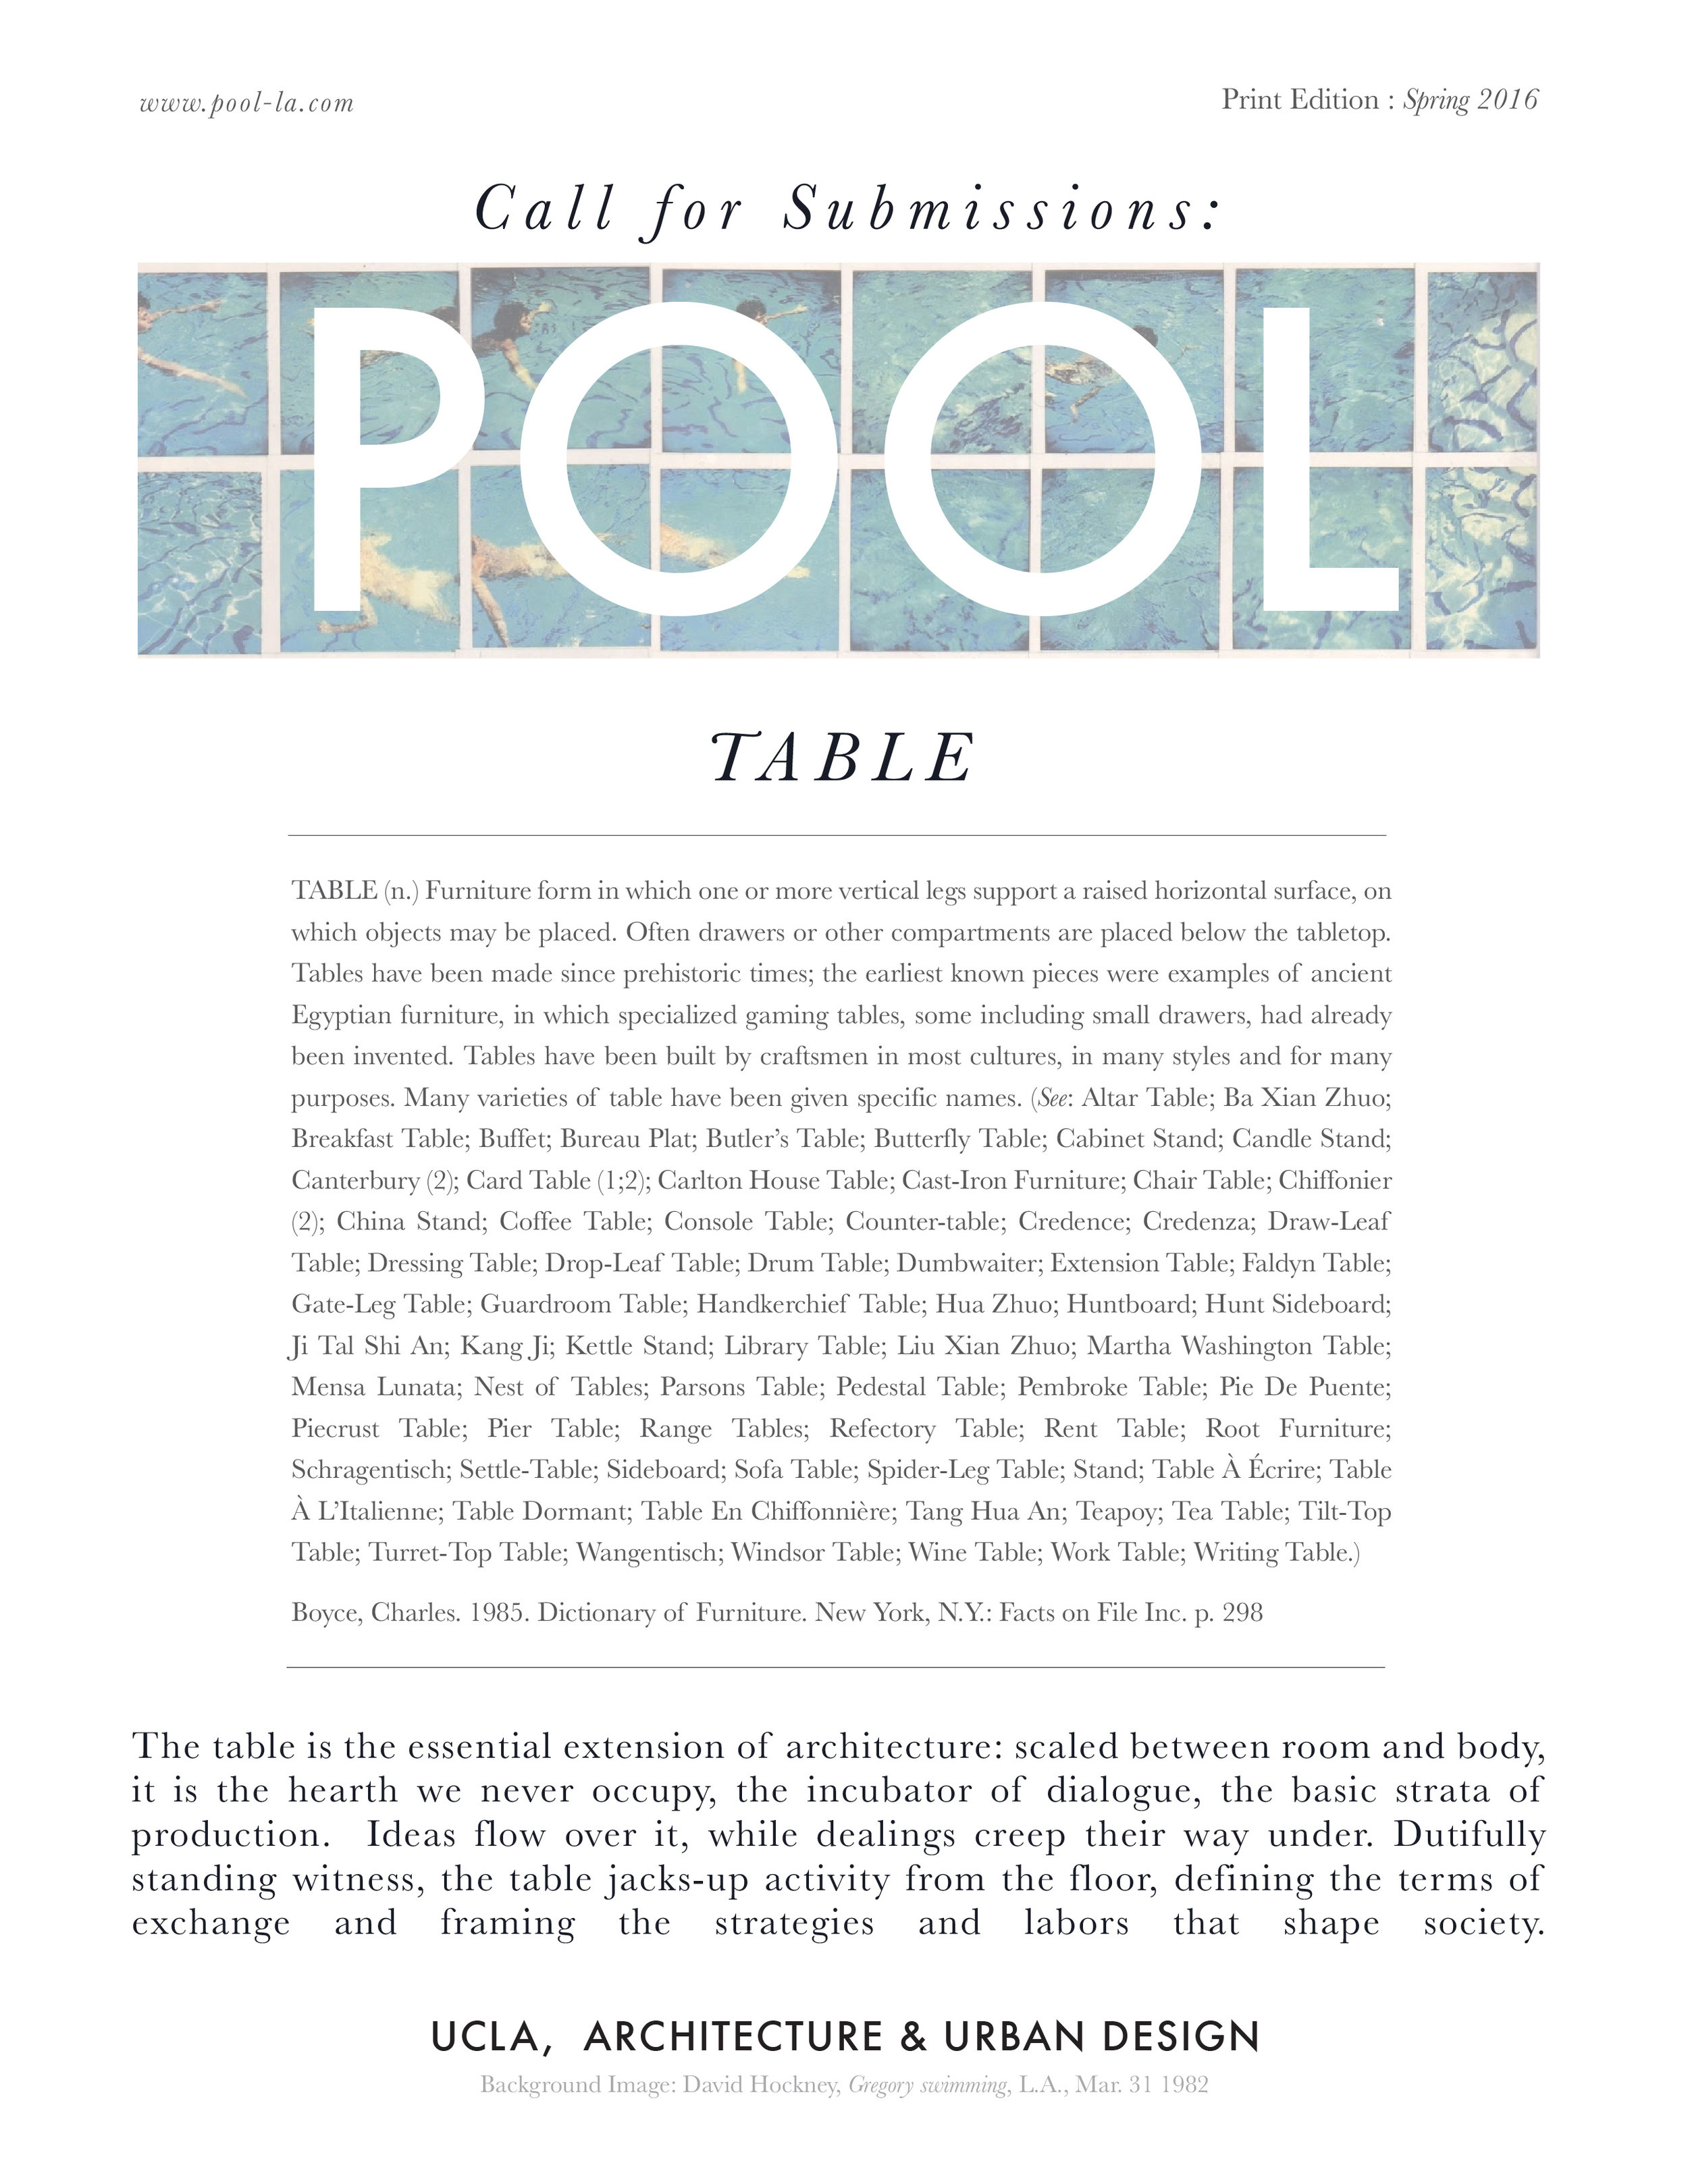 Issue No.1: TABLE